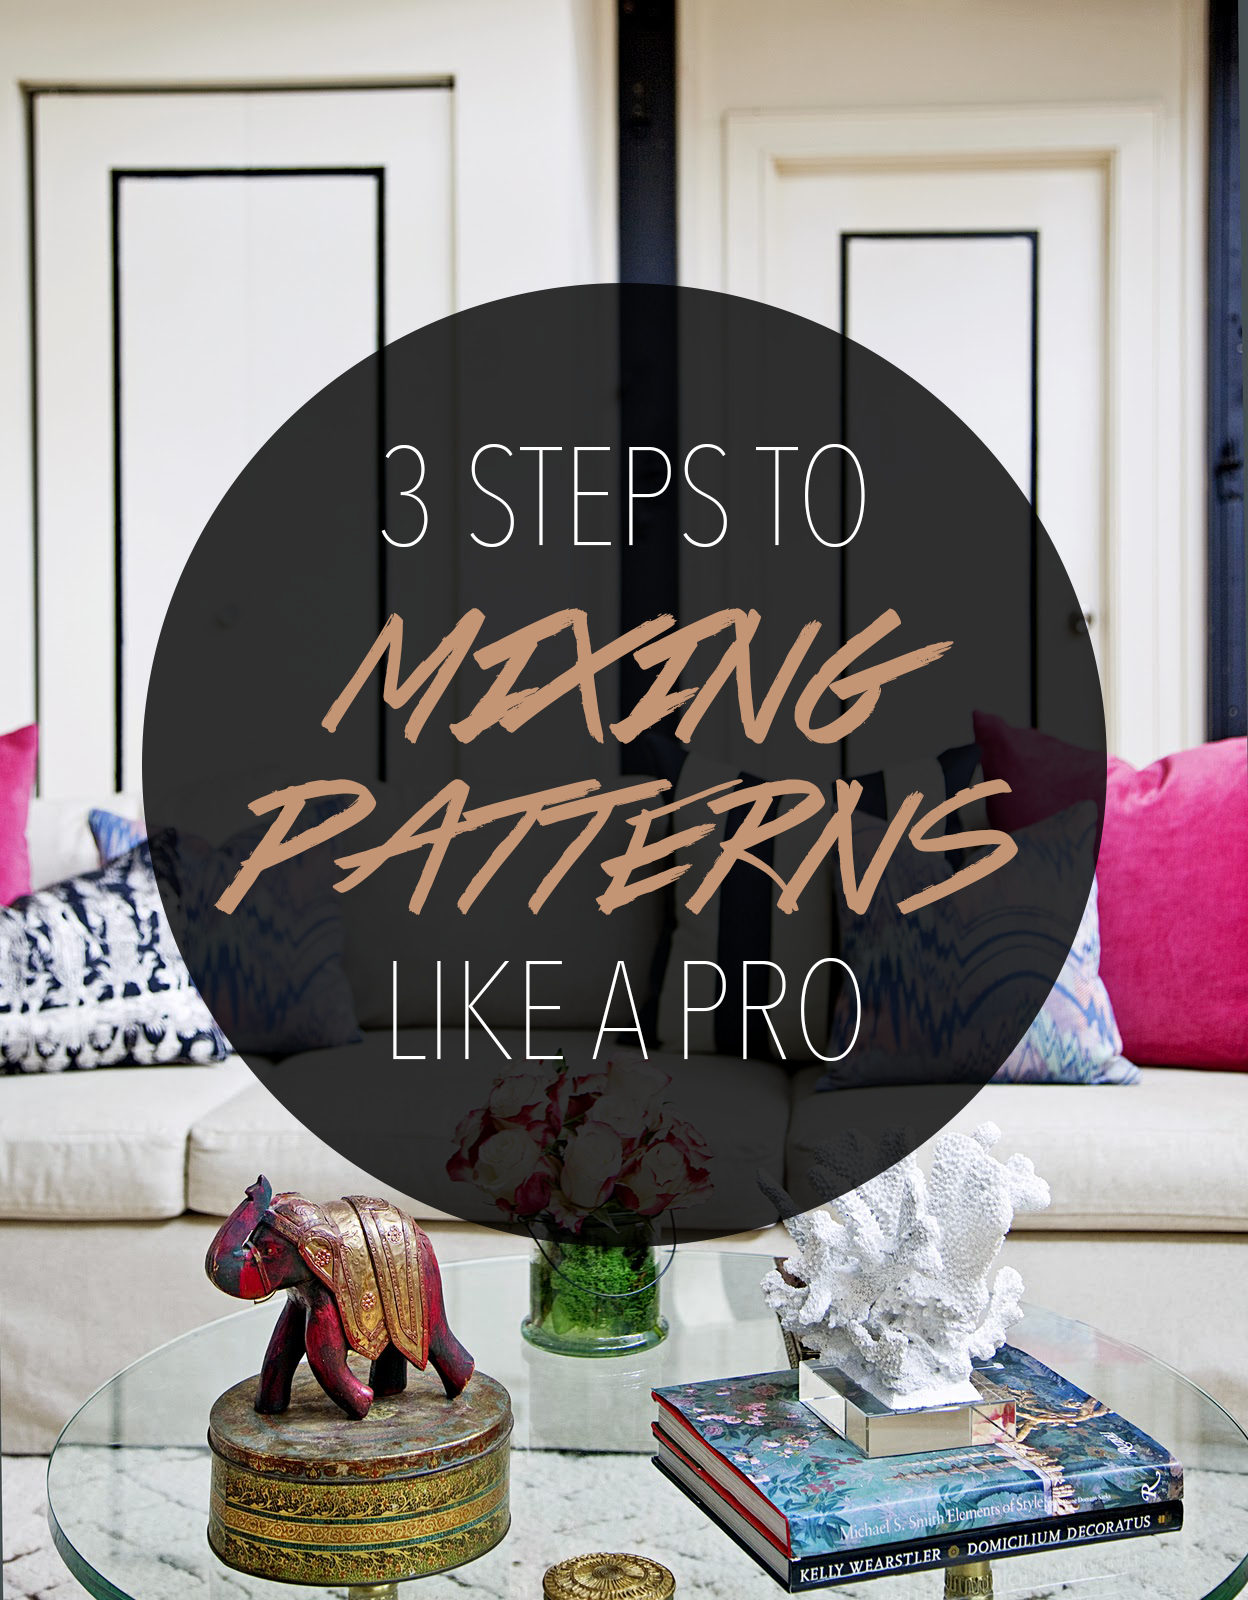 mixing patterns like a pro